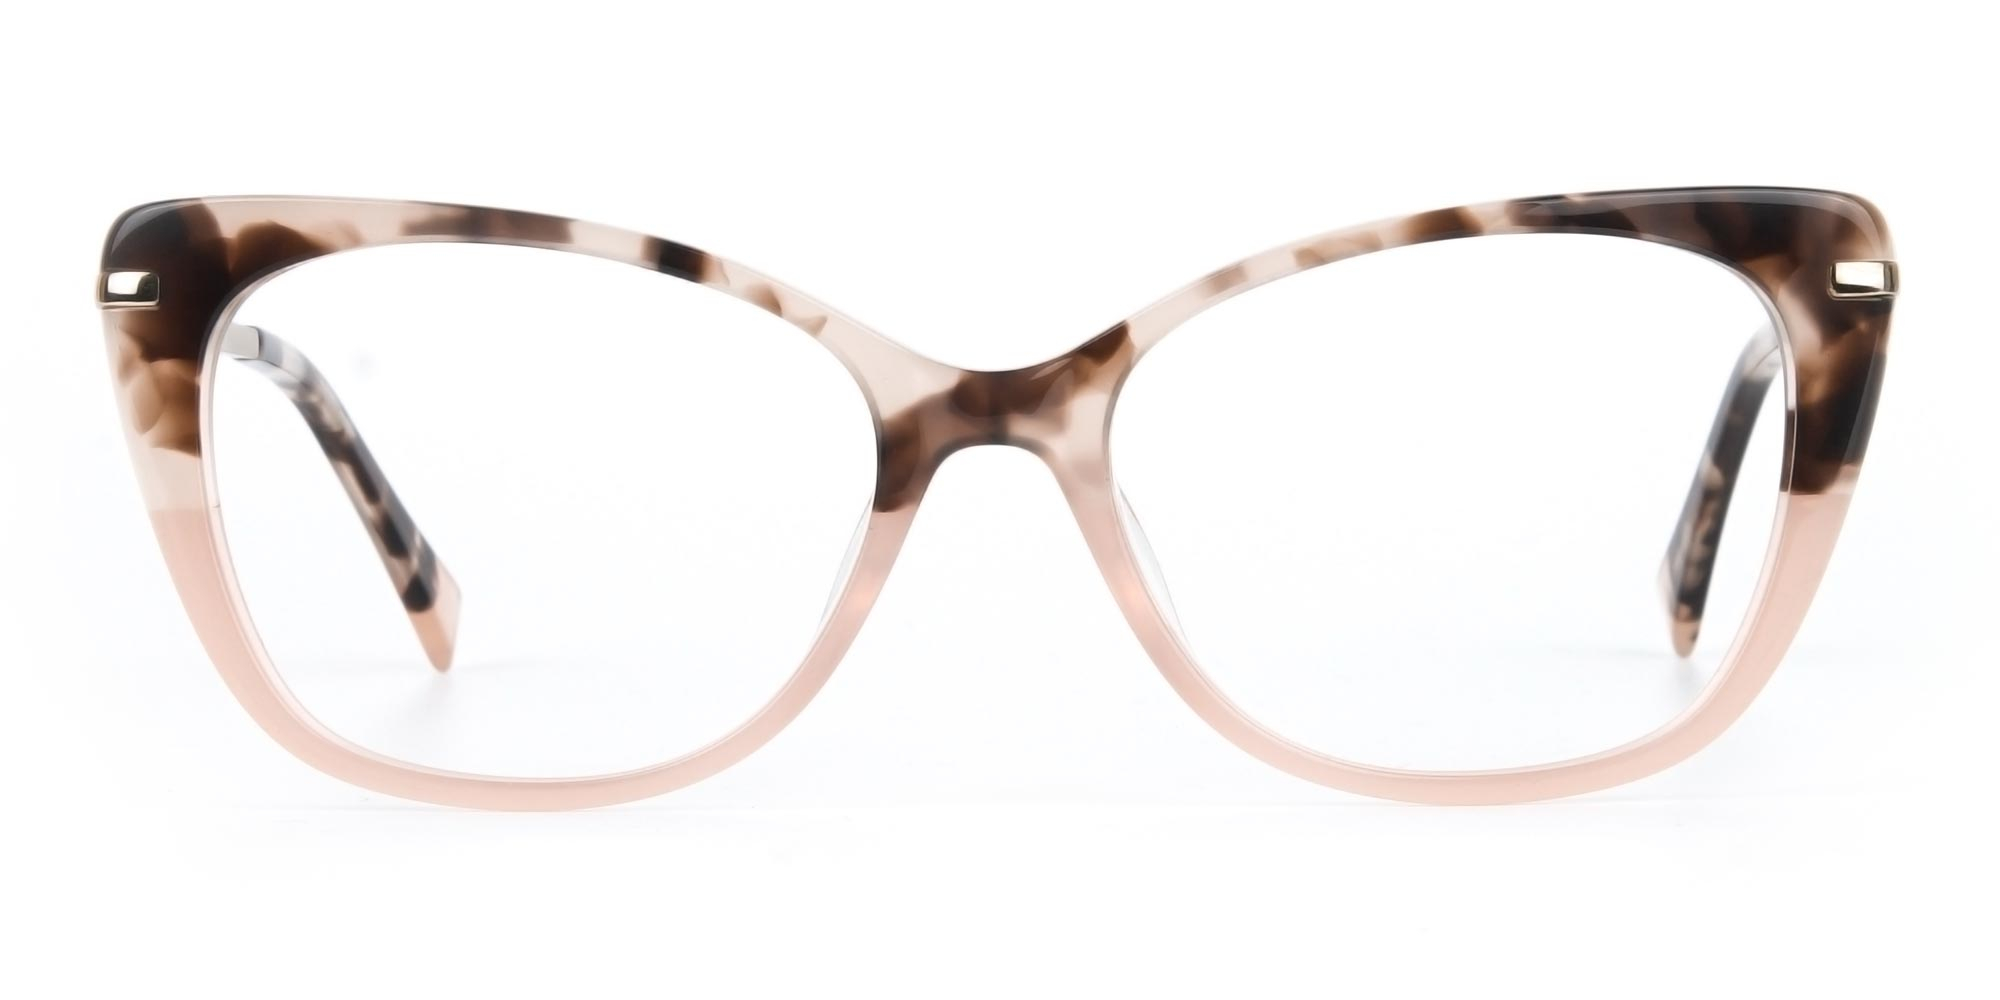 Tortoise and Rosy Pink Cat-Eye Glasses